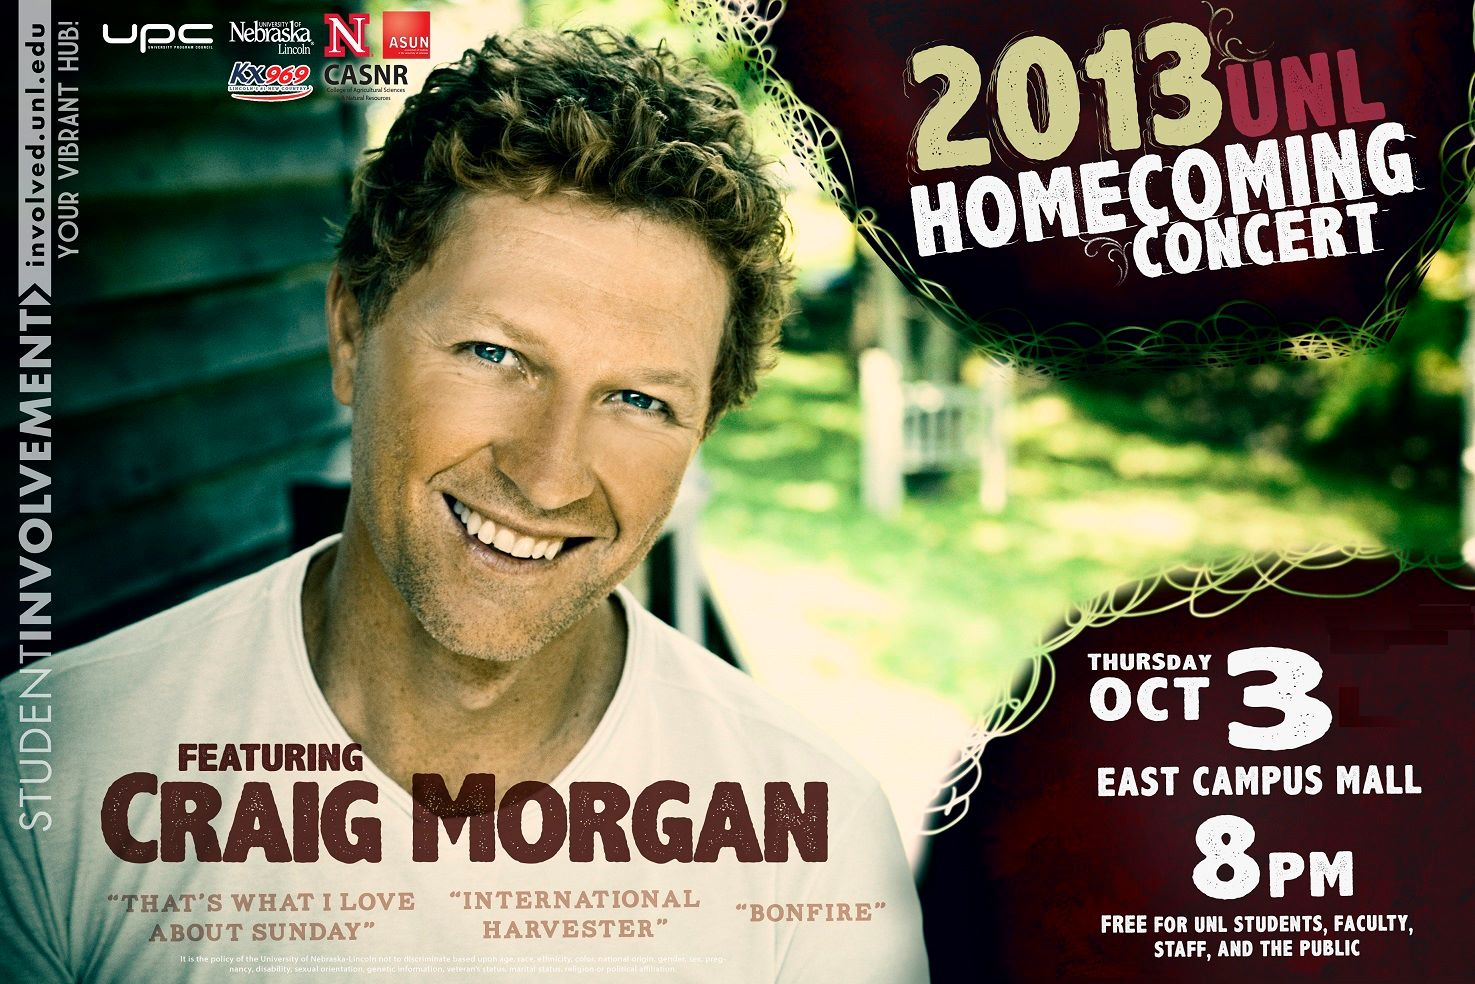 2013 UNL HOMECOMING CONCERT FEATURING CRAIG MORGAN WITH SPECIAL GUEST STAR BRYNN MARIE